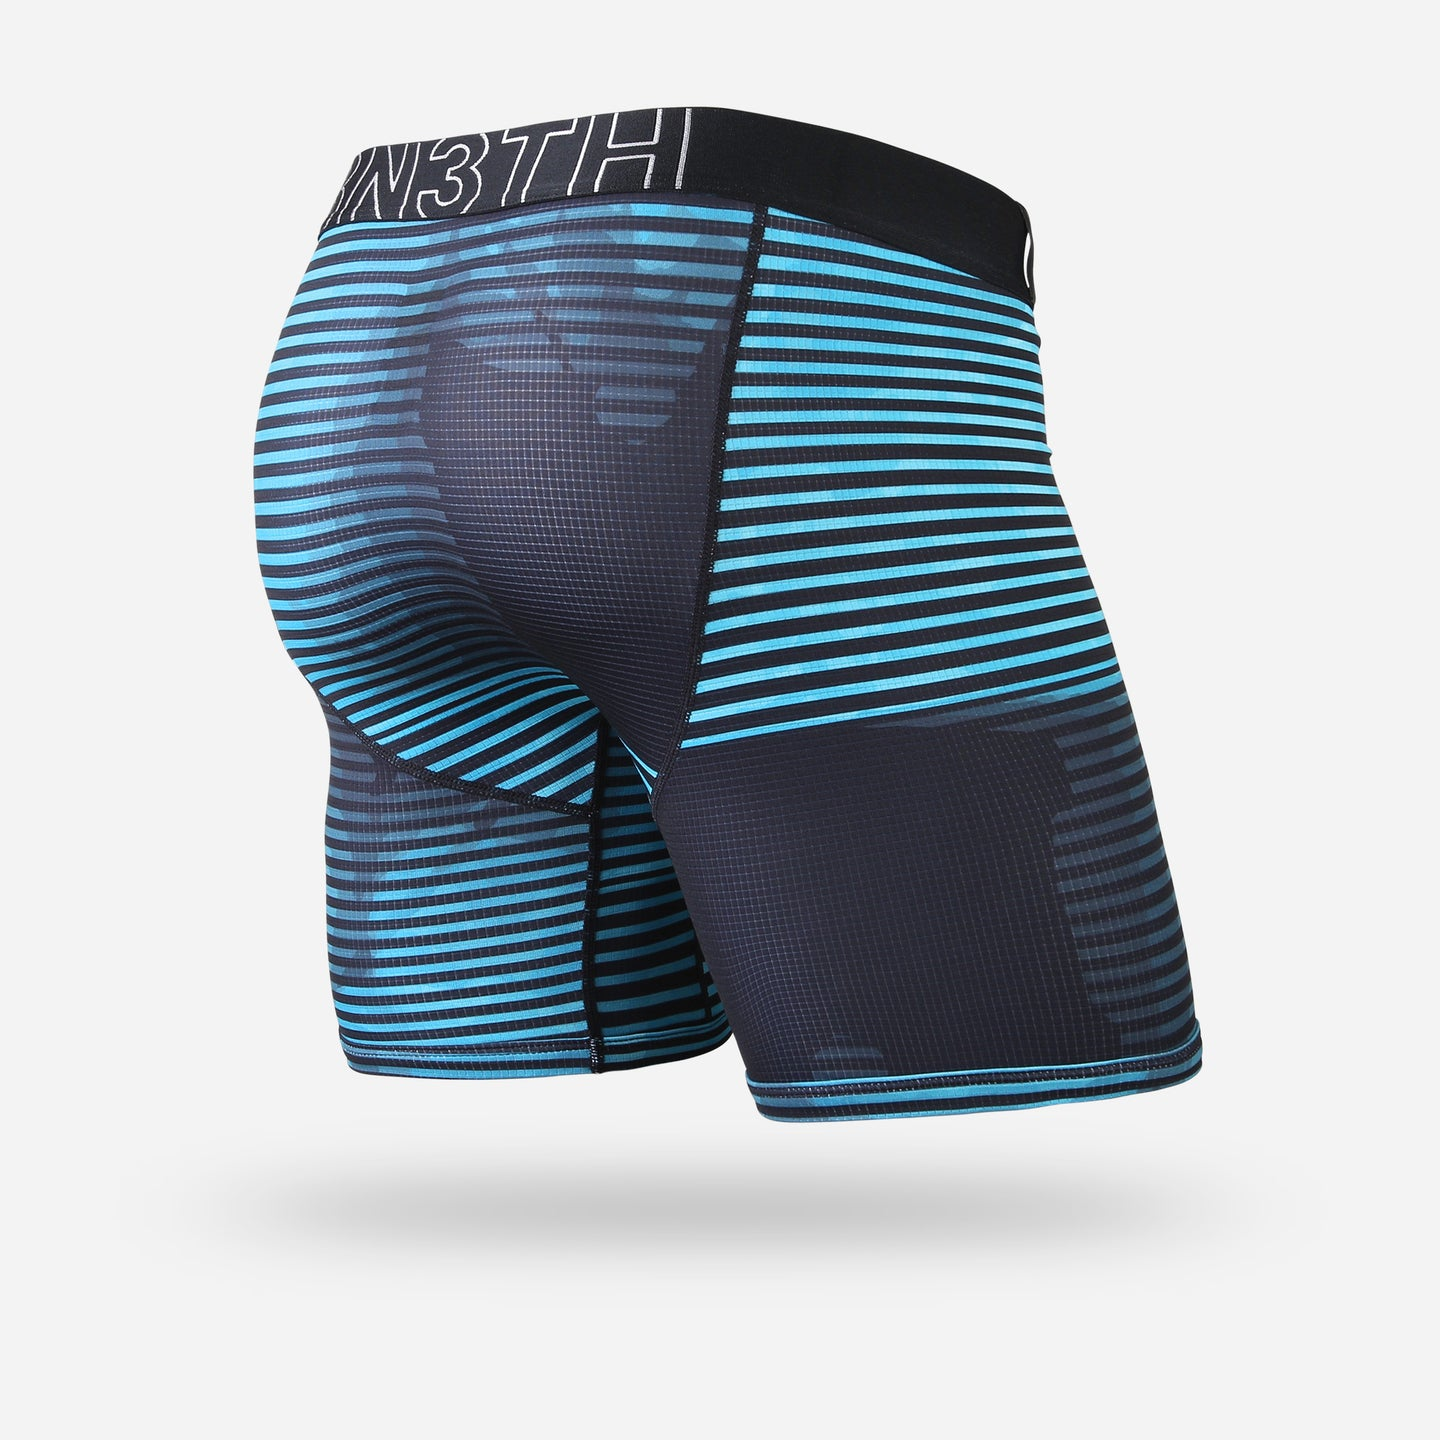 ENTOURAGE BOXER BRIEF: X-RAY TEAL